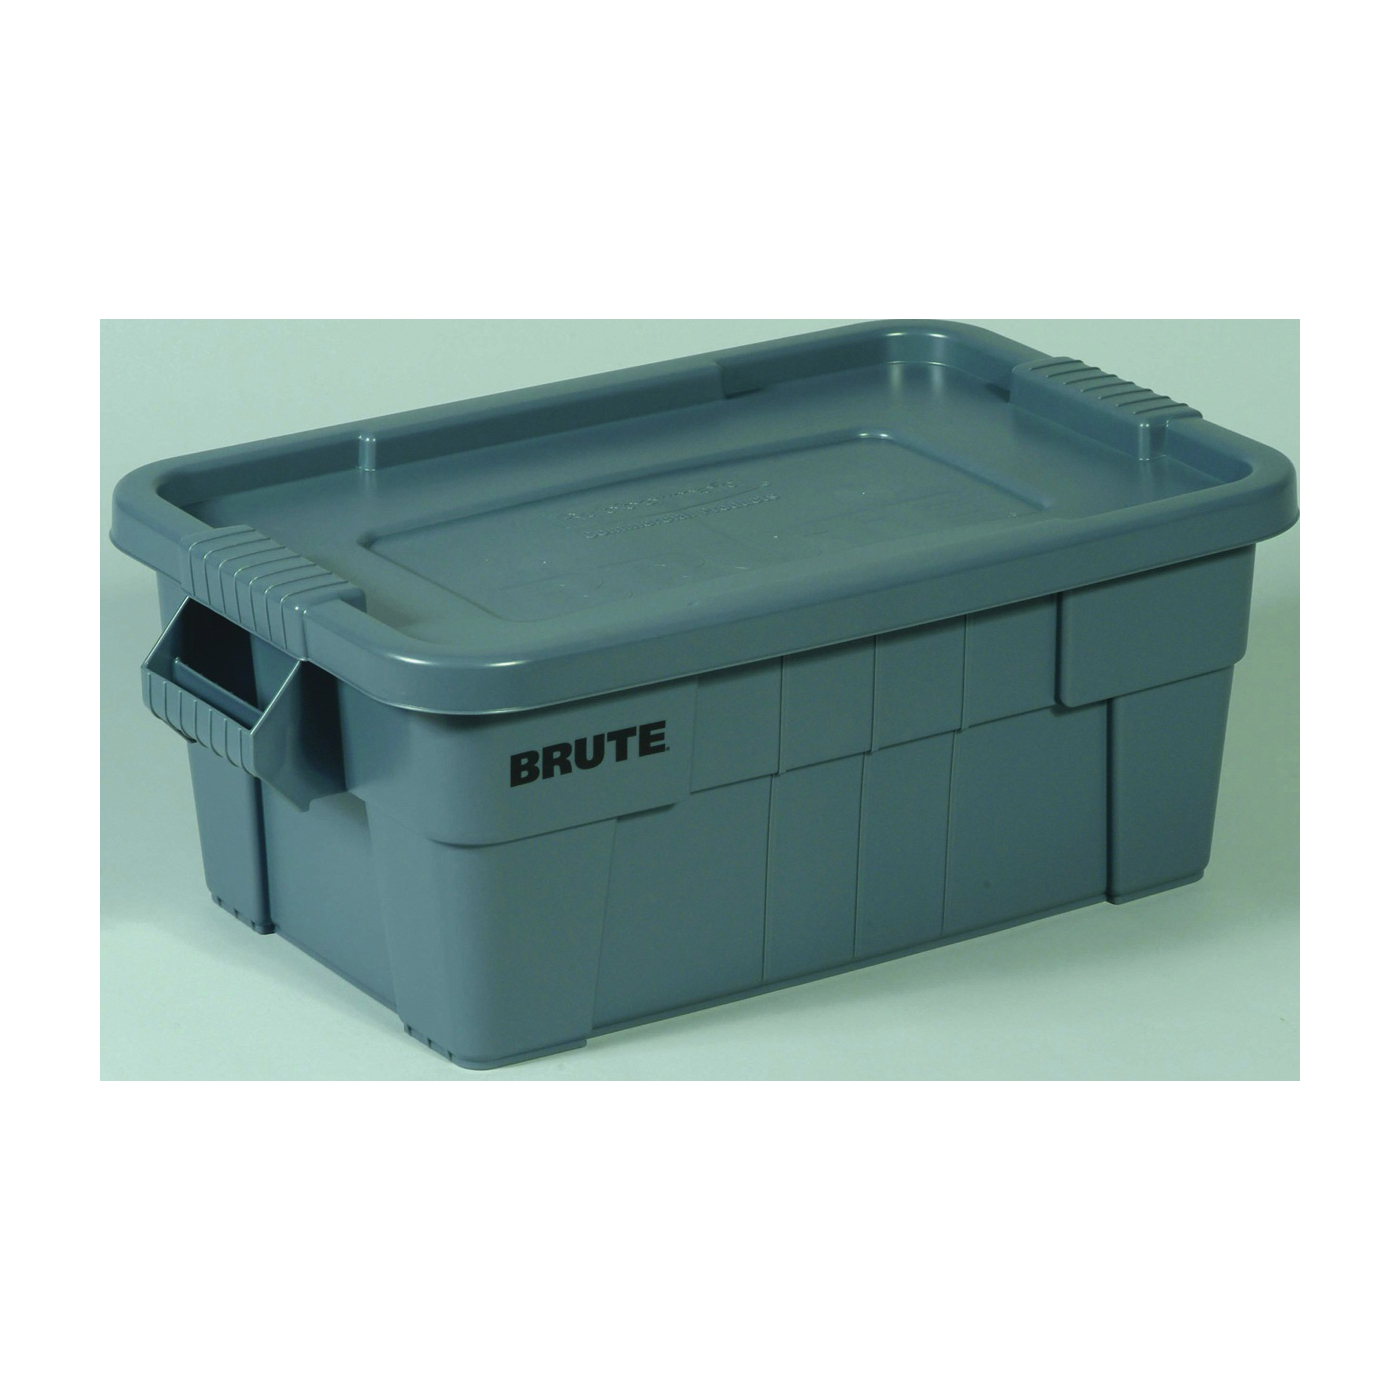 Picture of Rubbermaid Brute 1836781 Storage Tote with Lid, Gray, 27-7/8 in L, 17-3/8 in W, 15 in H